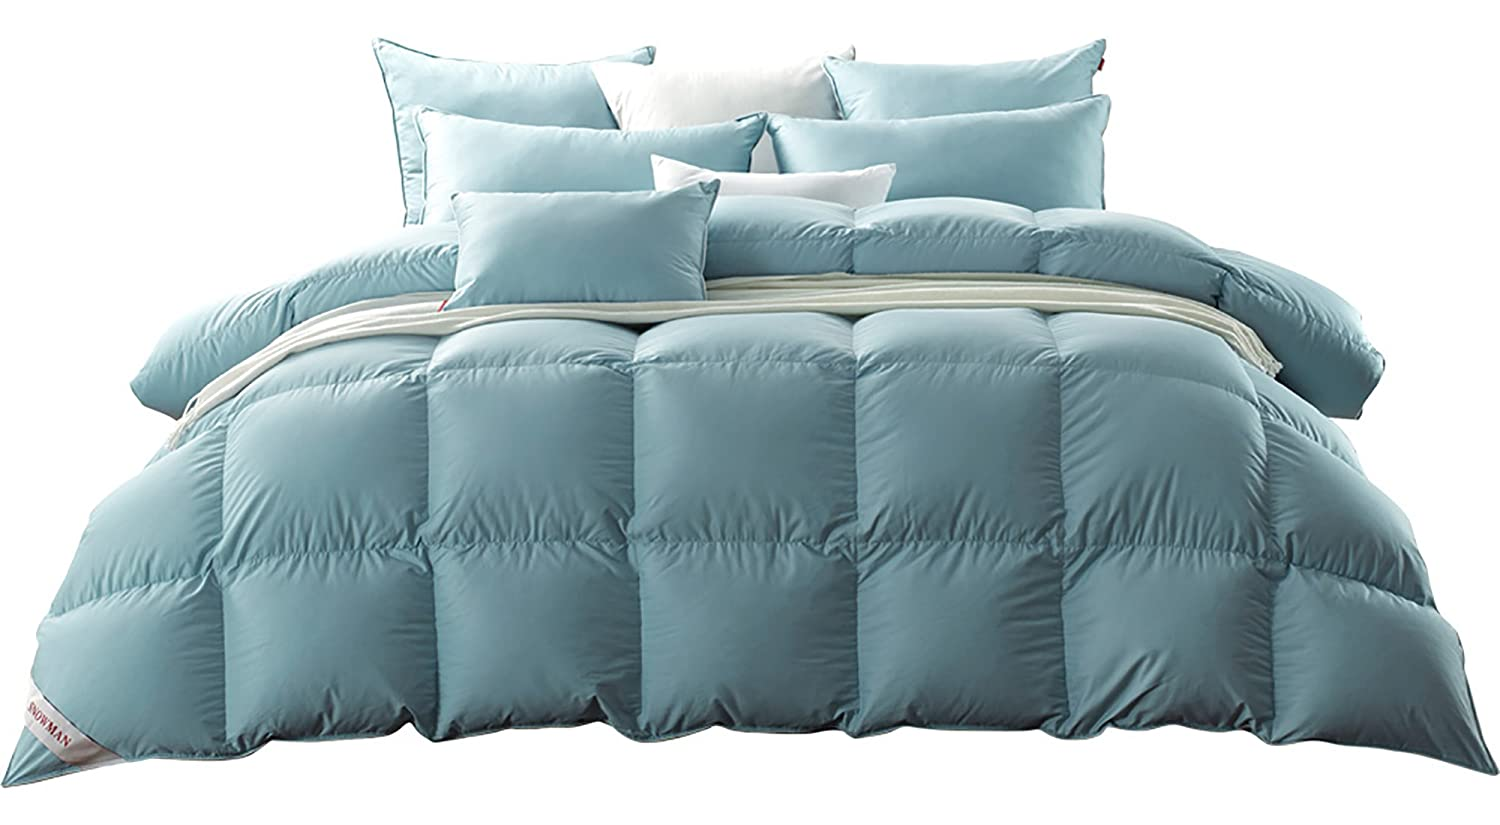 SNOWMAN Luxurious CAL King Size Light Weight Goose Down Comforter,100% Cotton Cover Down Proof,Blue